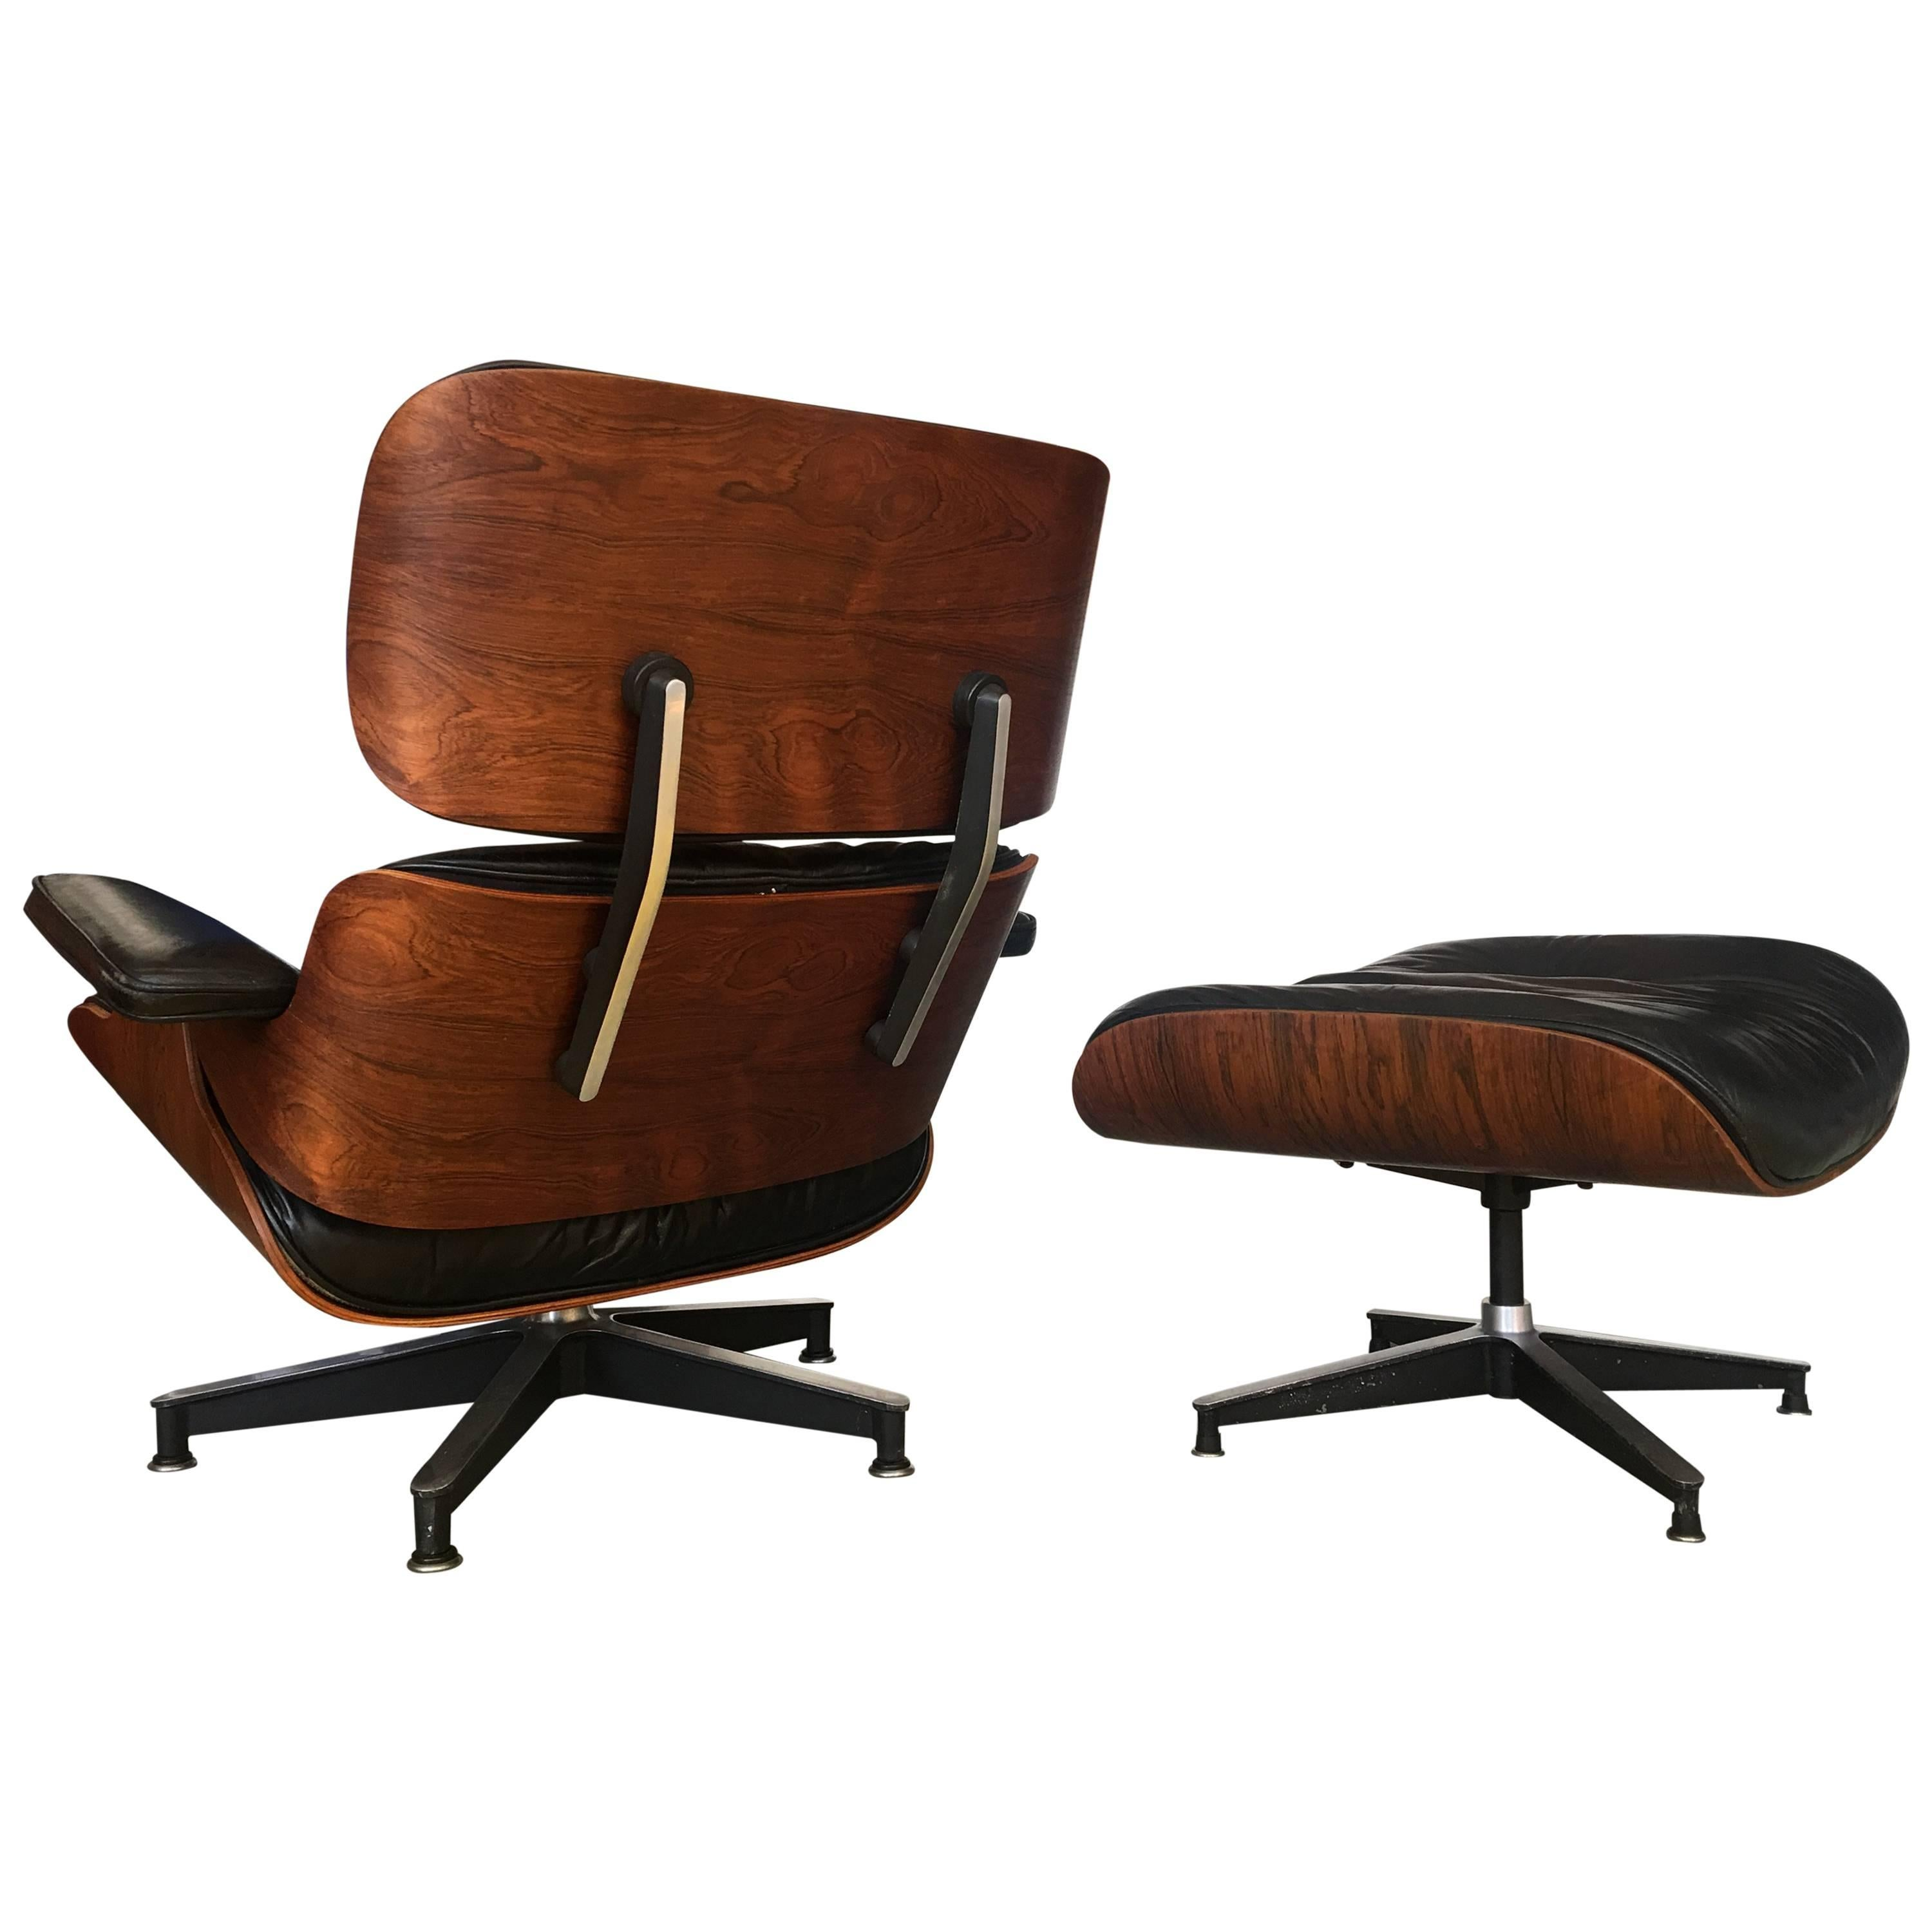 Etonnant Rare 1st Year 1956, Eames Lounge With Spinning Ottoman For Sale